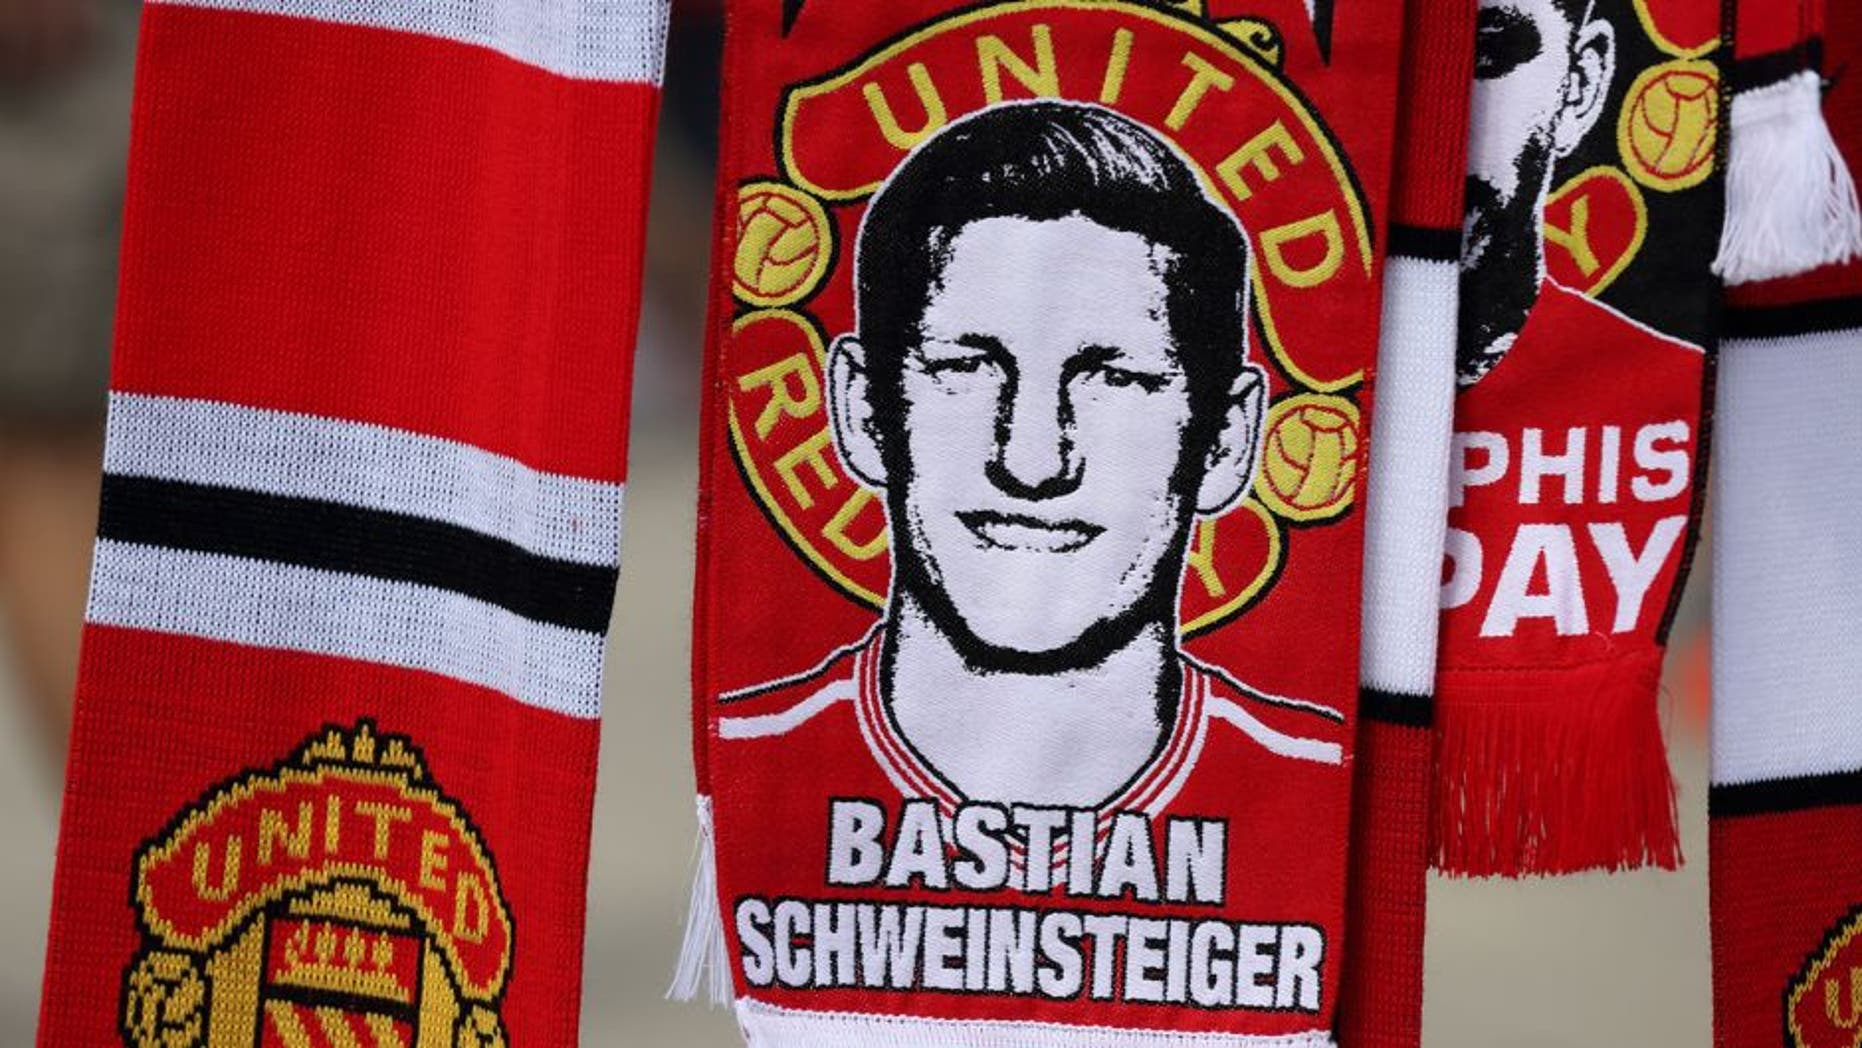 MANCHESTER, ENGLAND - AUGUST 08: A scarf of Bastian Schweinsteiger of Manchester United before the Barclays Premier League match between Manchester United and Tottenham Hotspur at Old Trafford on August 08, 2015 in Manchester, England. (Photo by Matthew Ashton - AMA/Getty Images)